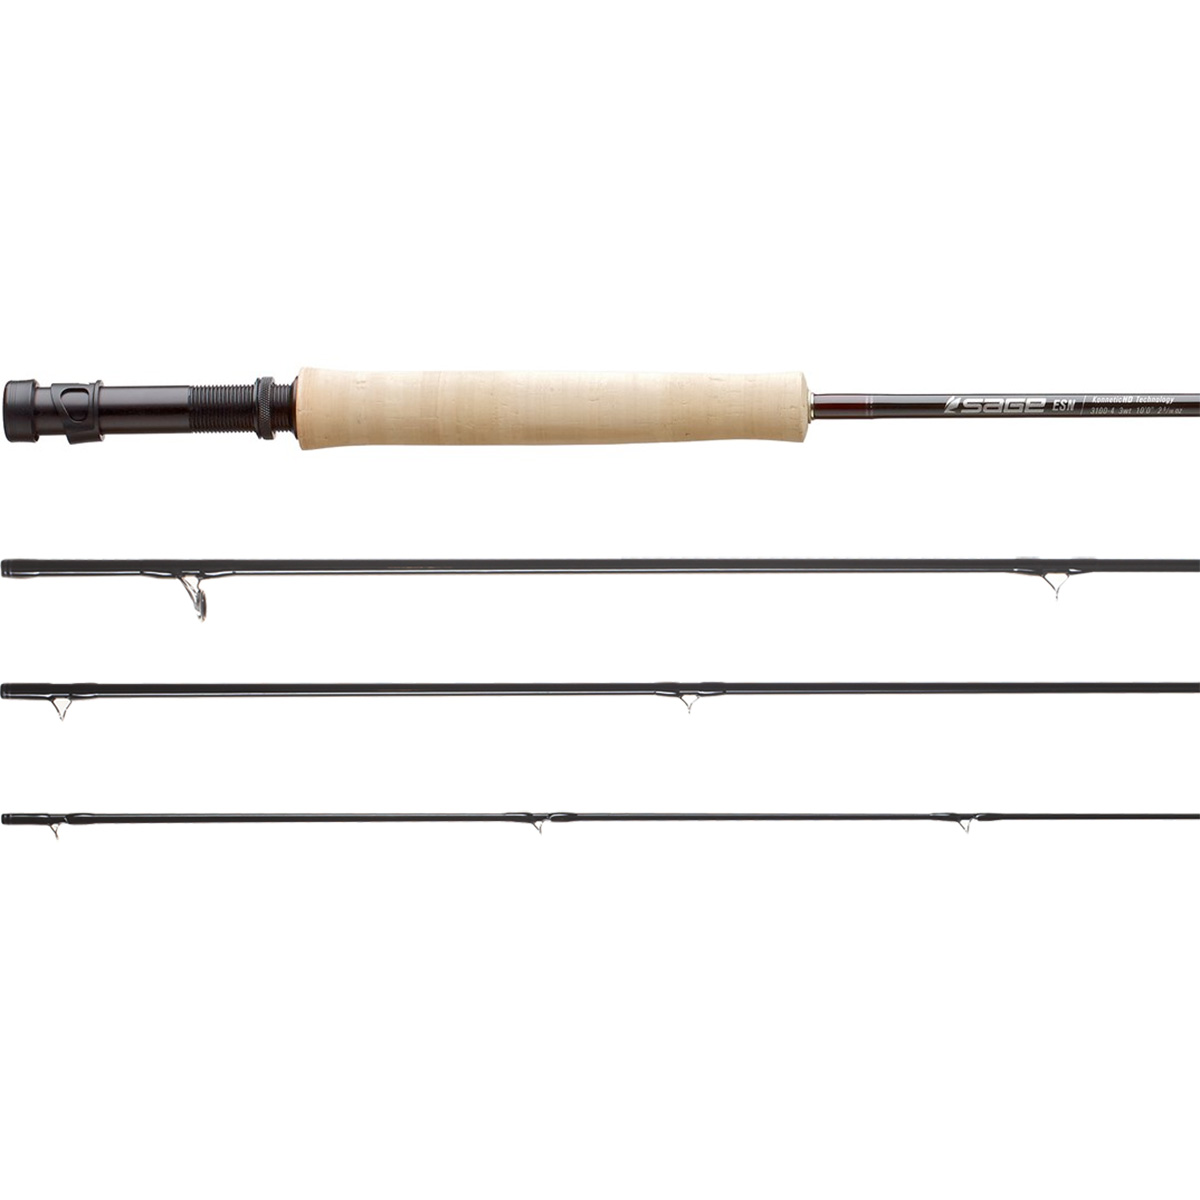 Sage esn rod fly fishing rods ebay for Ebay fishing poles